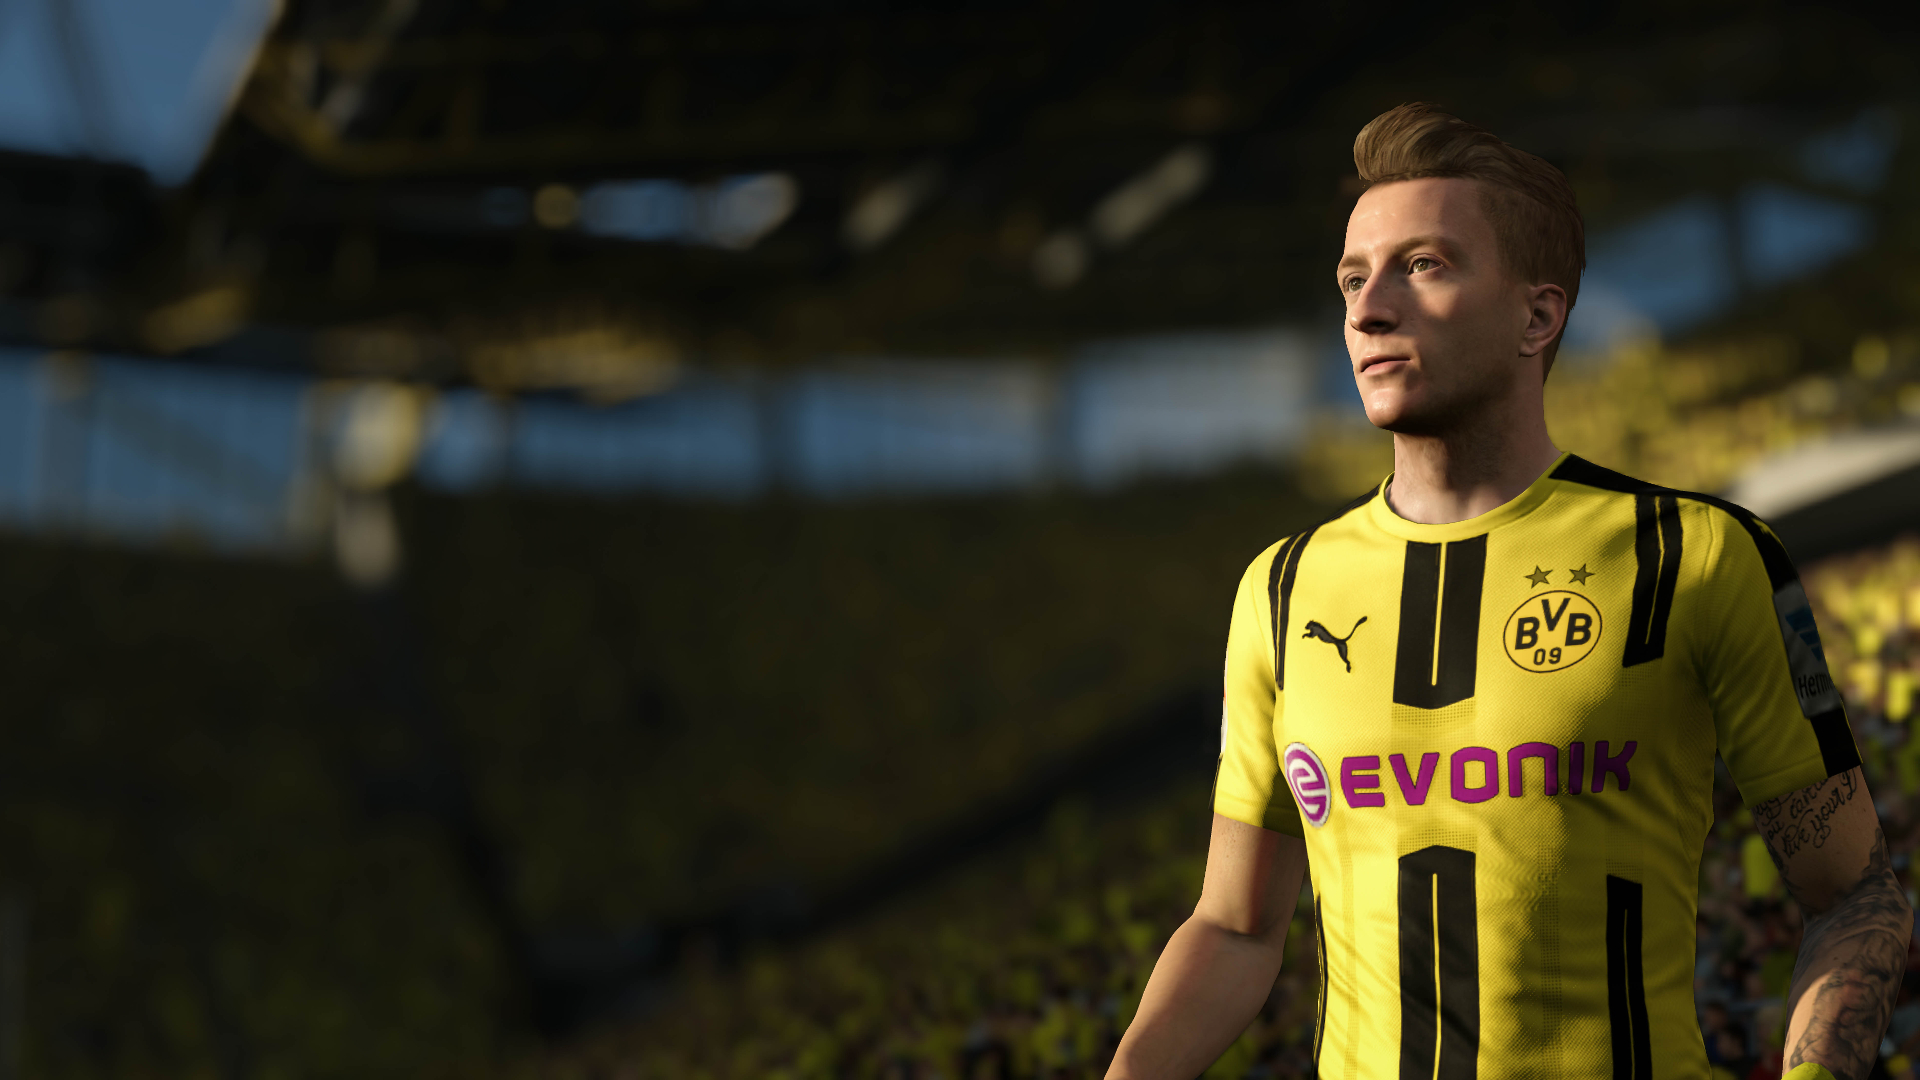 Fans choose marco reus to be global cover athlete for fifa 17 fans choose marco reus to be global cover athlete for fifa 17 soccer sporting news voltagebd Choice Image